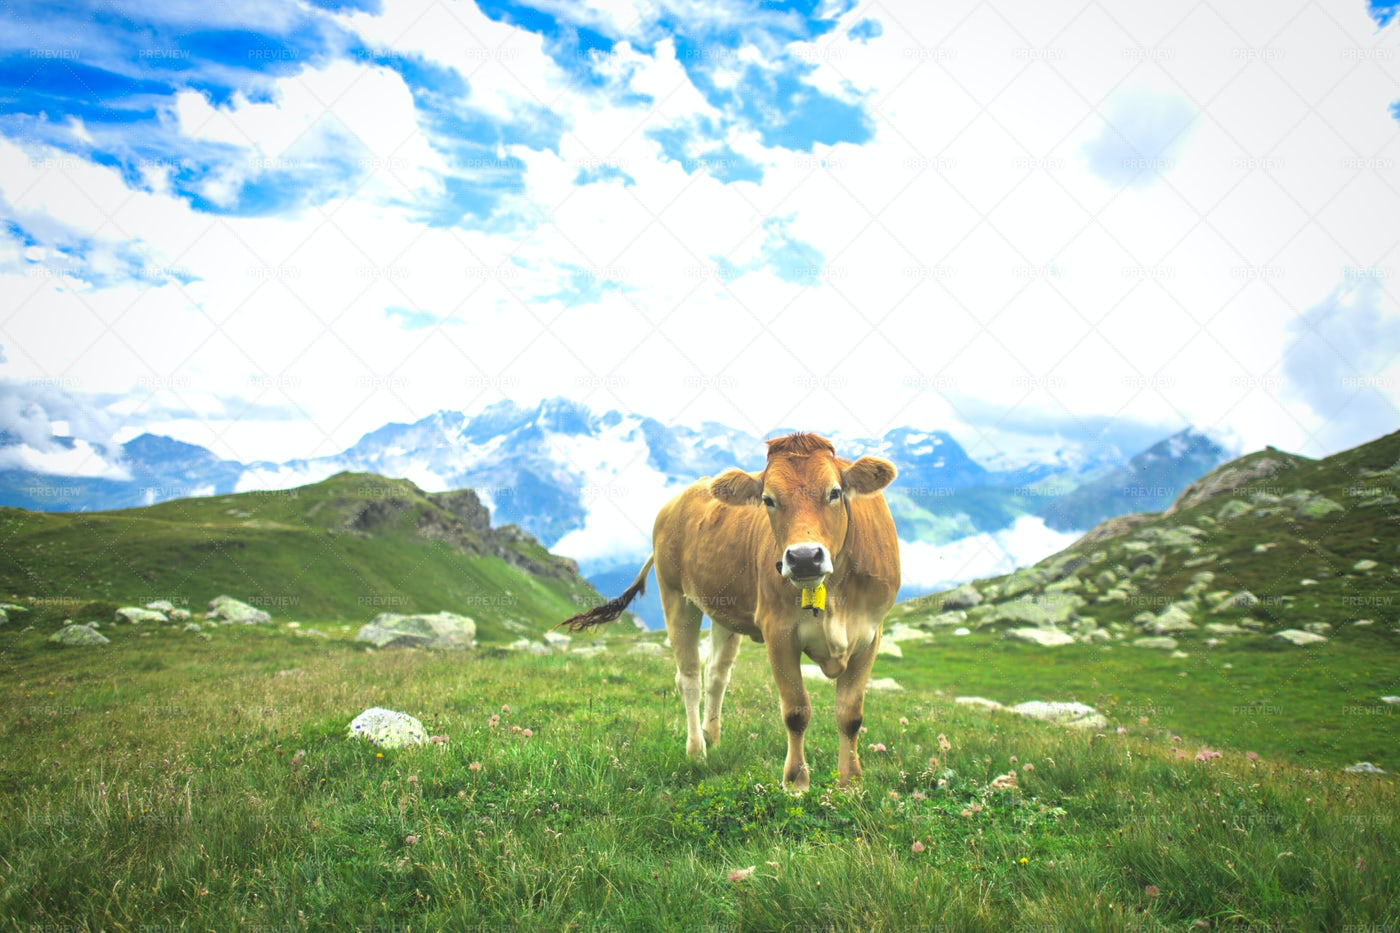 Cows On The Pastures: Stock Photos